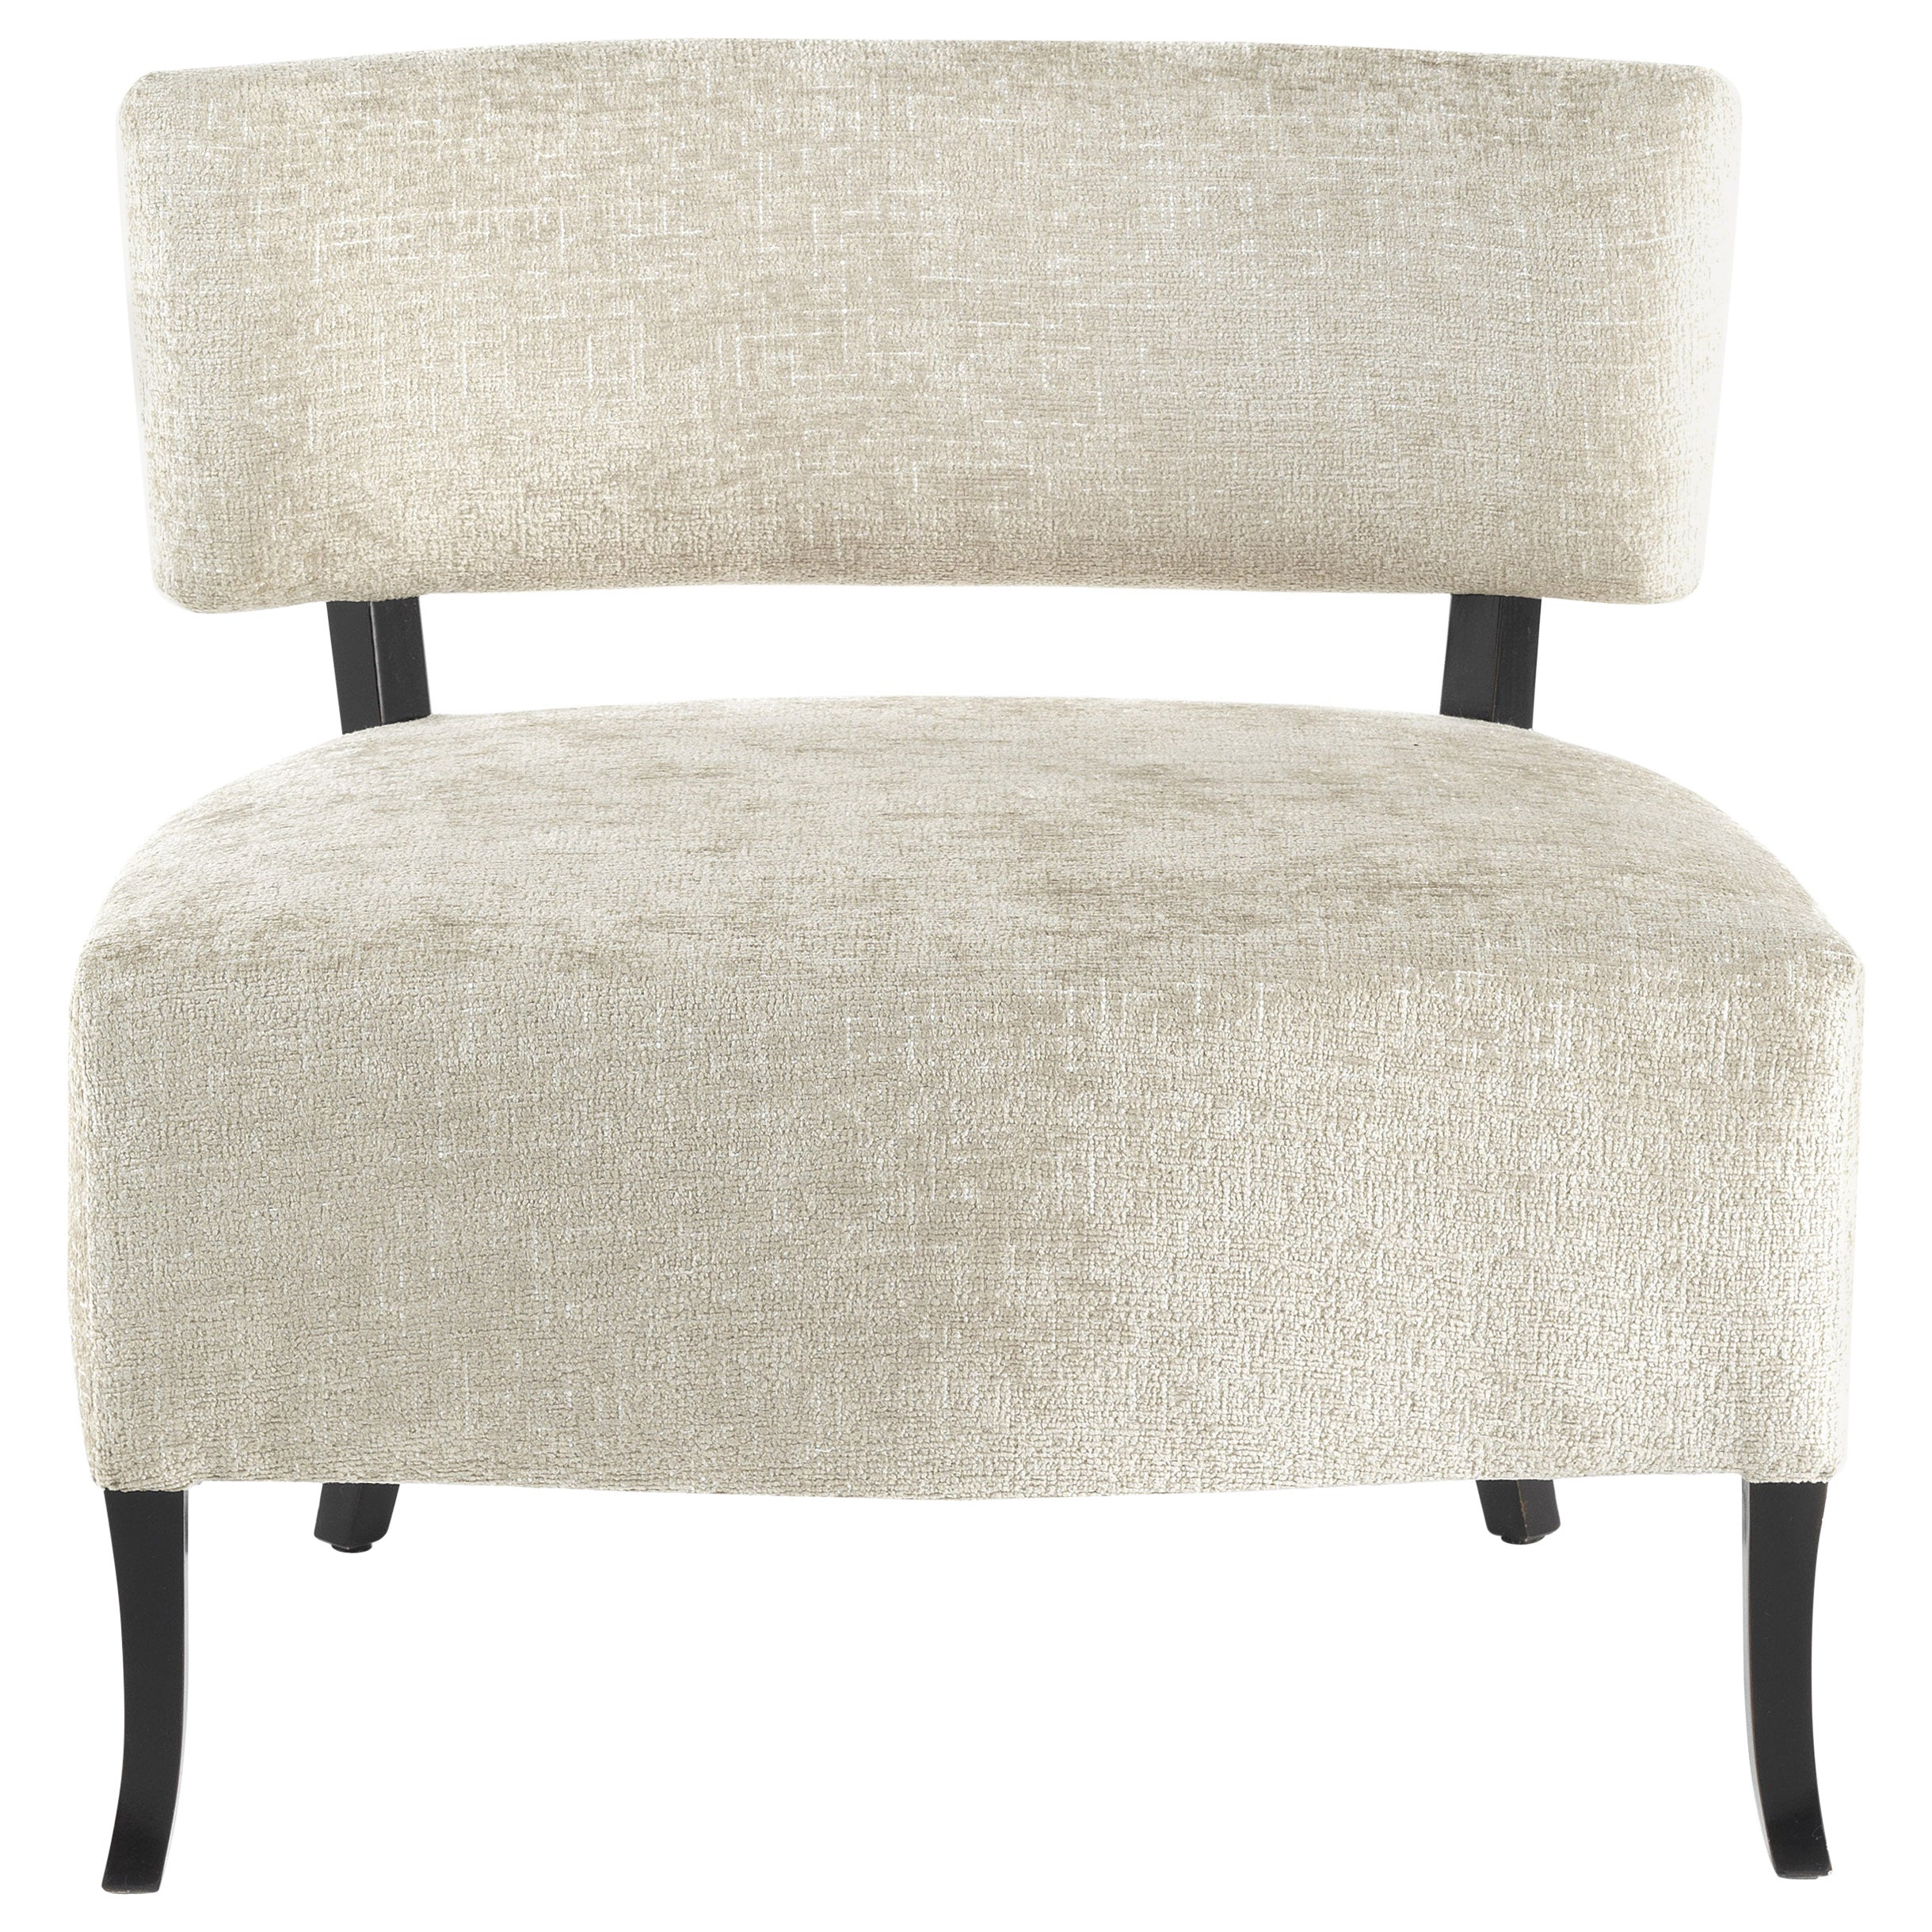 Gianfranco Ferré Home Thea Armchair in Fabric